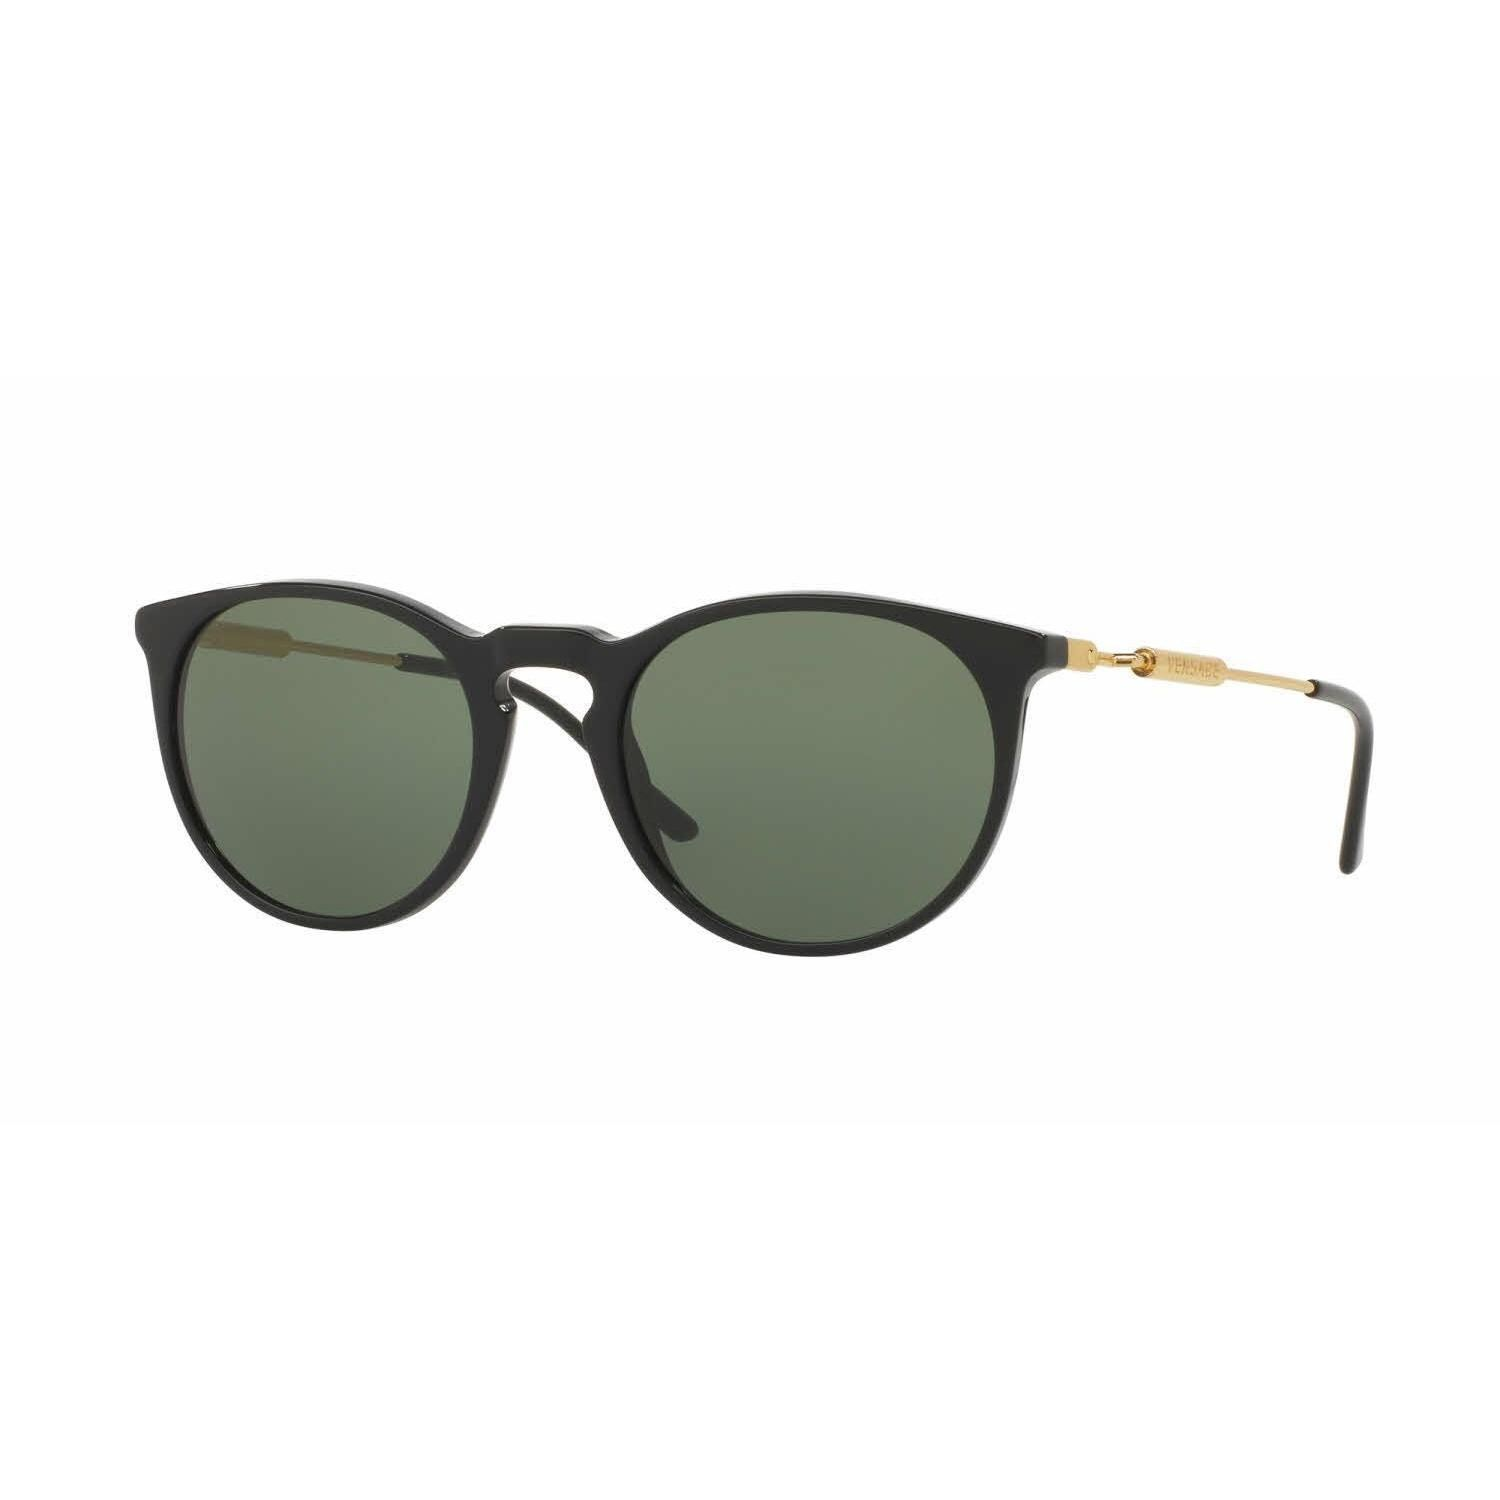 5181c1b7bd3 Versace Sunglasses rank among the upper ends of trend and luxury. Versace  eye wear feature its nobility beyond measure for the highest socioeconomic  class ...